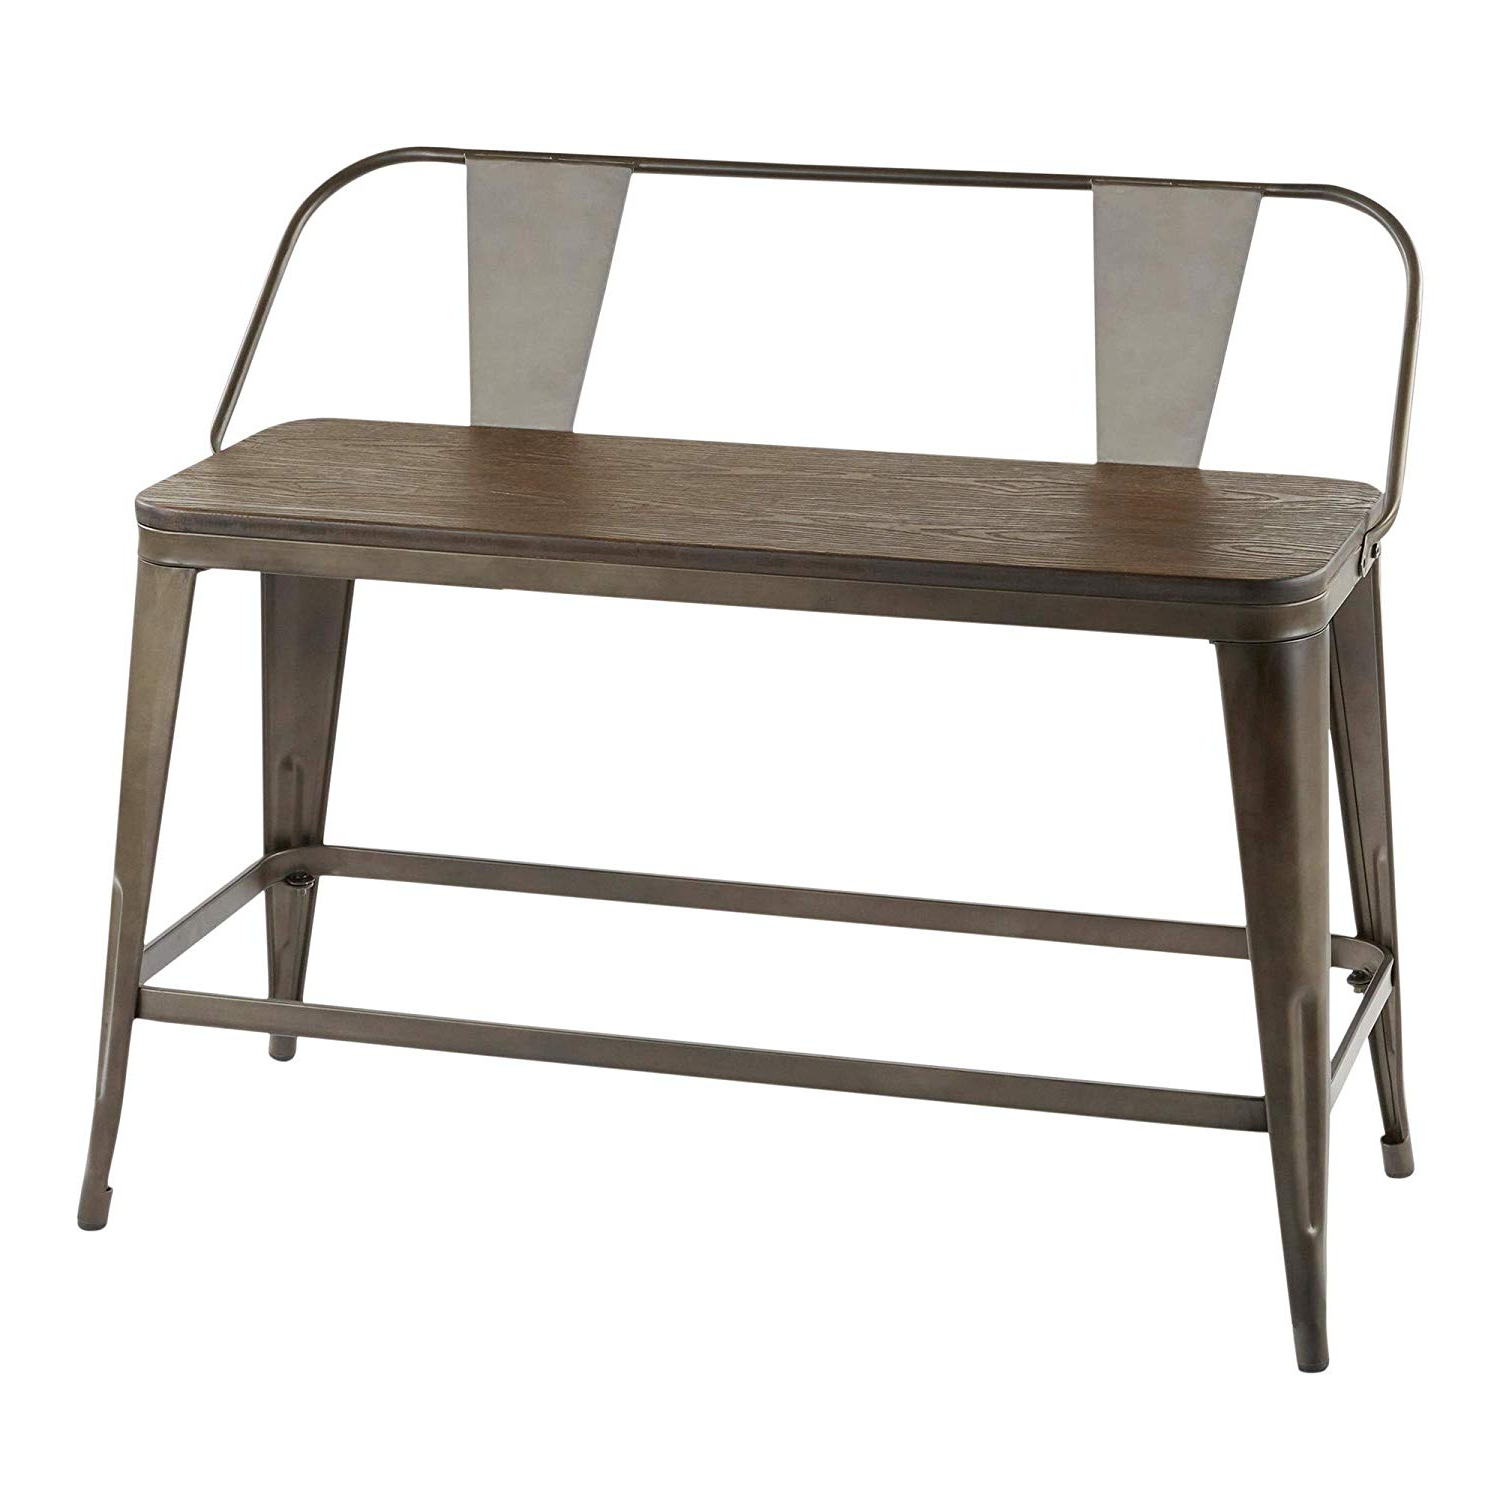 Amazon: Lumisource Counter Bench In Antique And Espresso Regarding Newest Vintage Cream Frame And Espresso Bamboo Dining Tables (View 16 of 25)